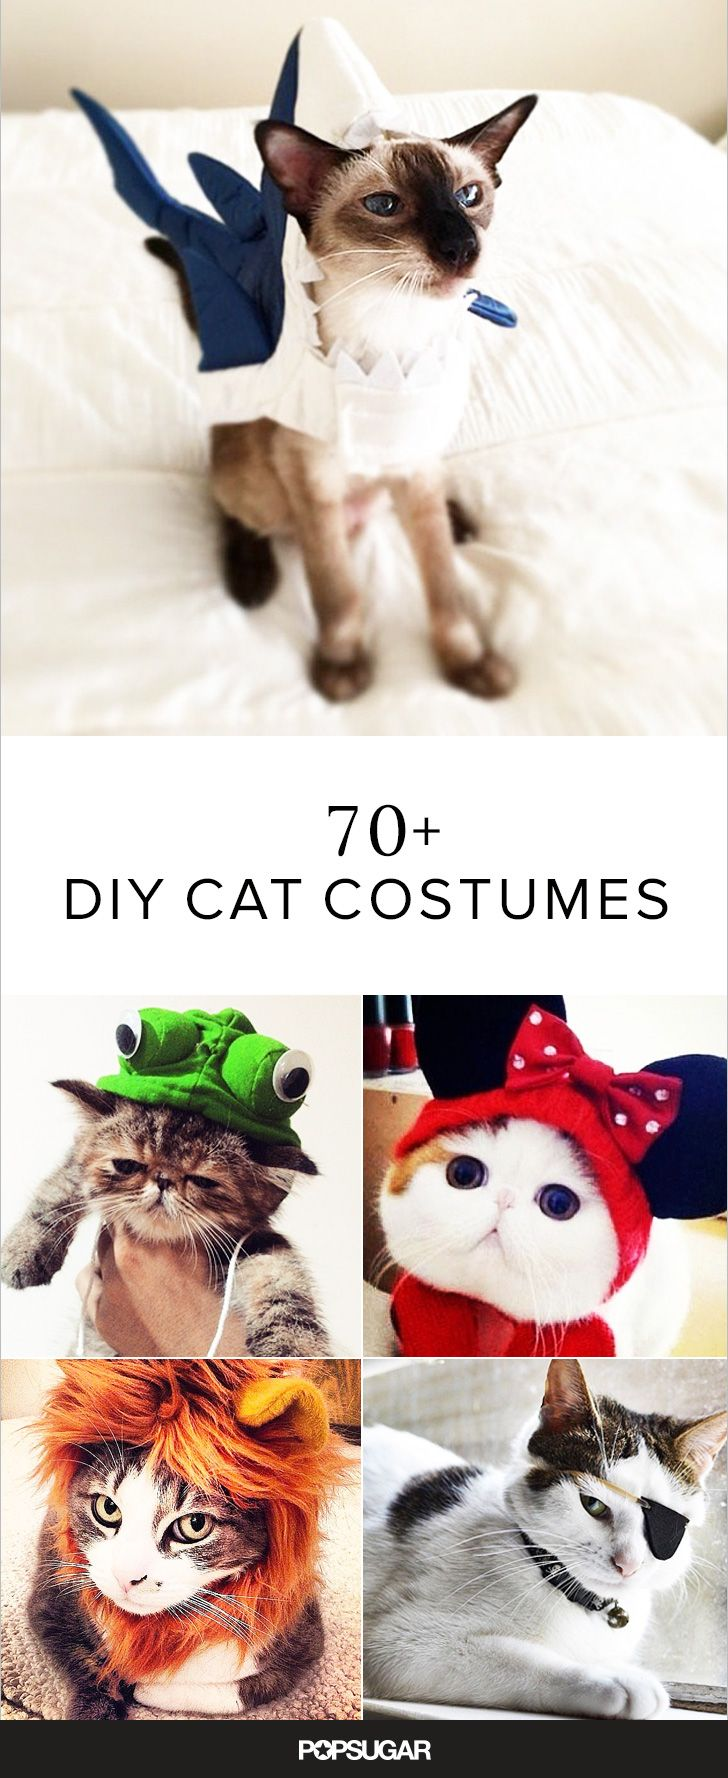 We can't stop laughing at these amazing DIY costumes for cats. The best part about them is that you can make them at home with just a few cheap supplies.